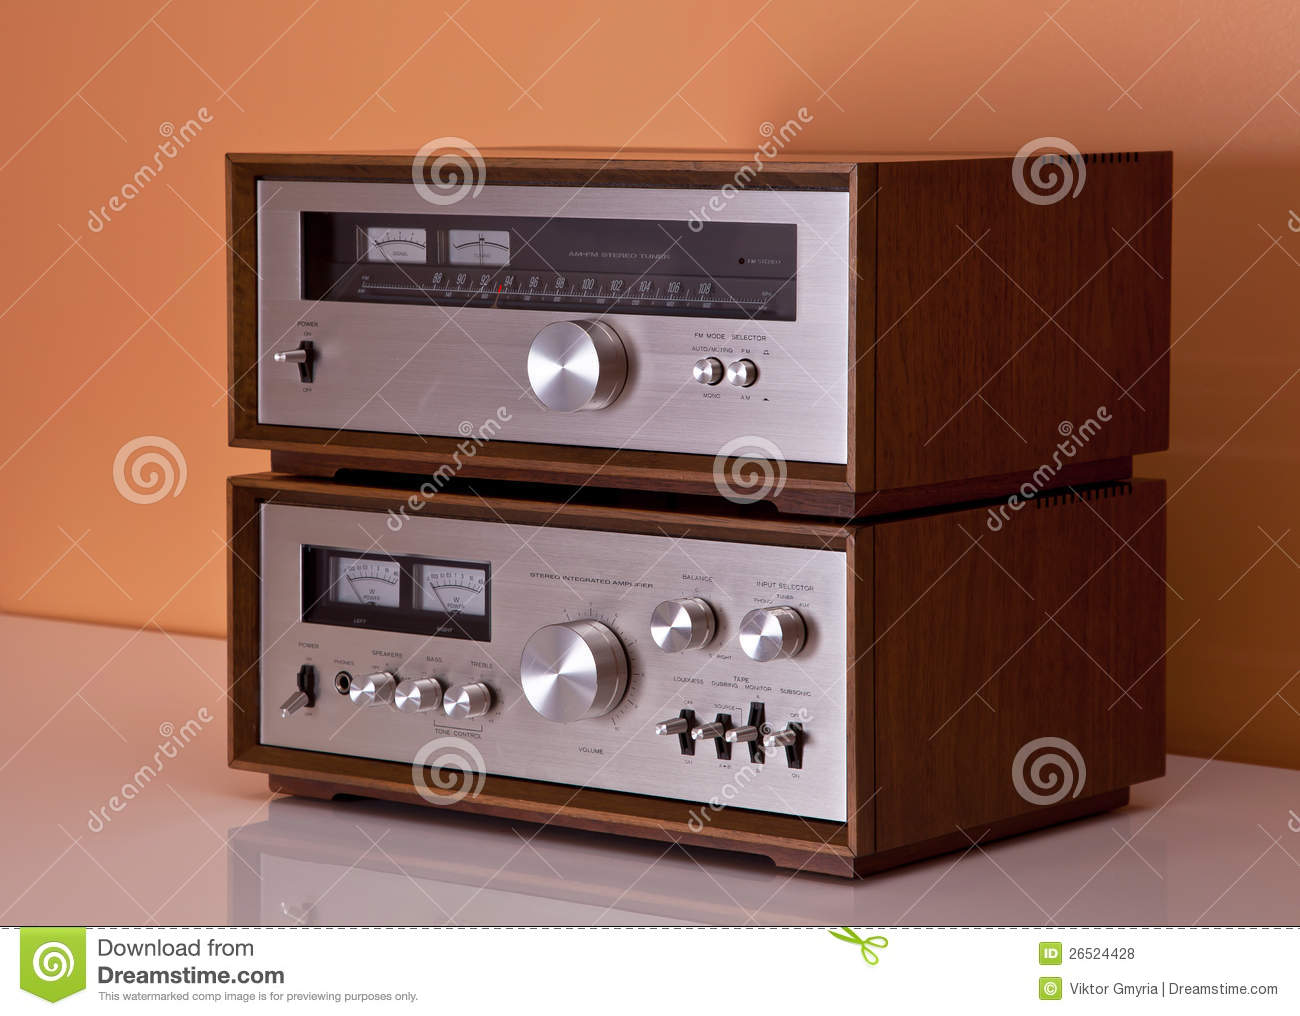 Vintage stereo amplifier and tuner wooden cabinets stock photo download comp publicscrutiny Image collections